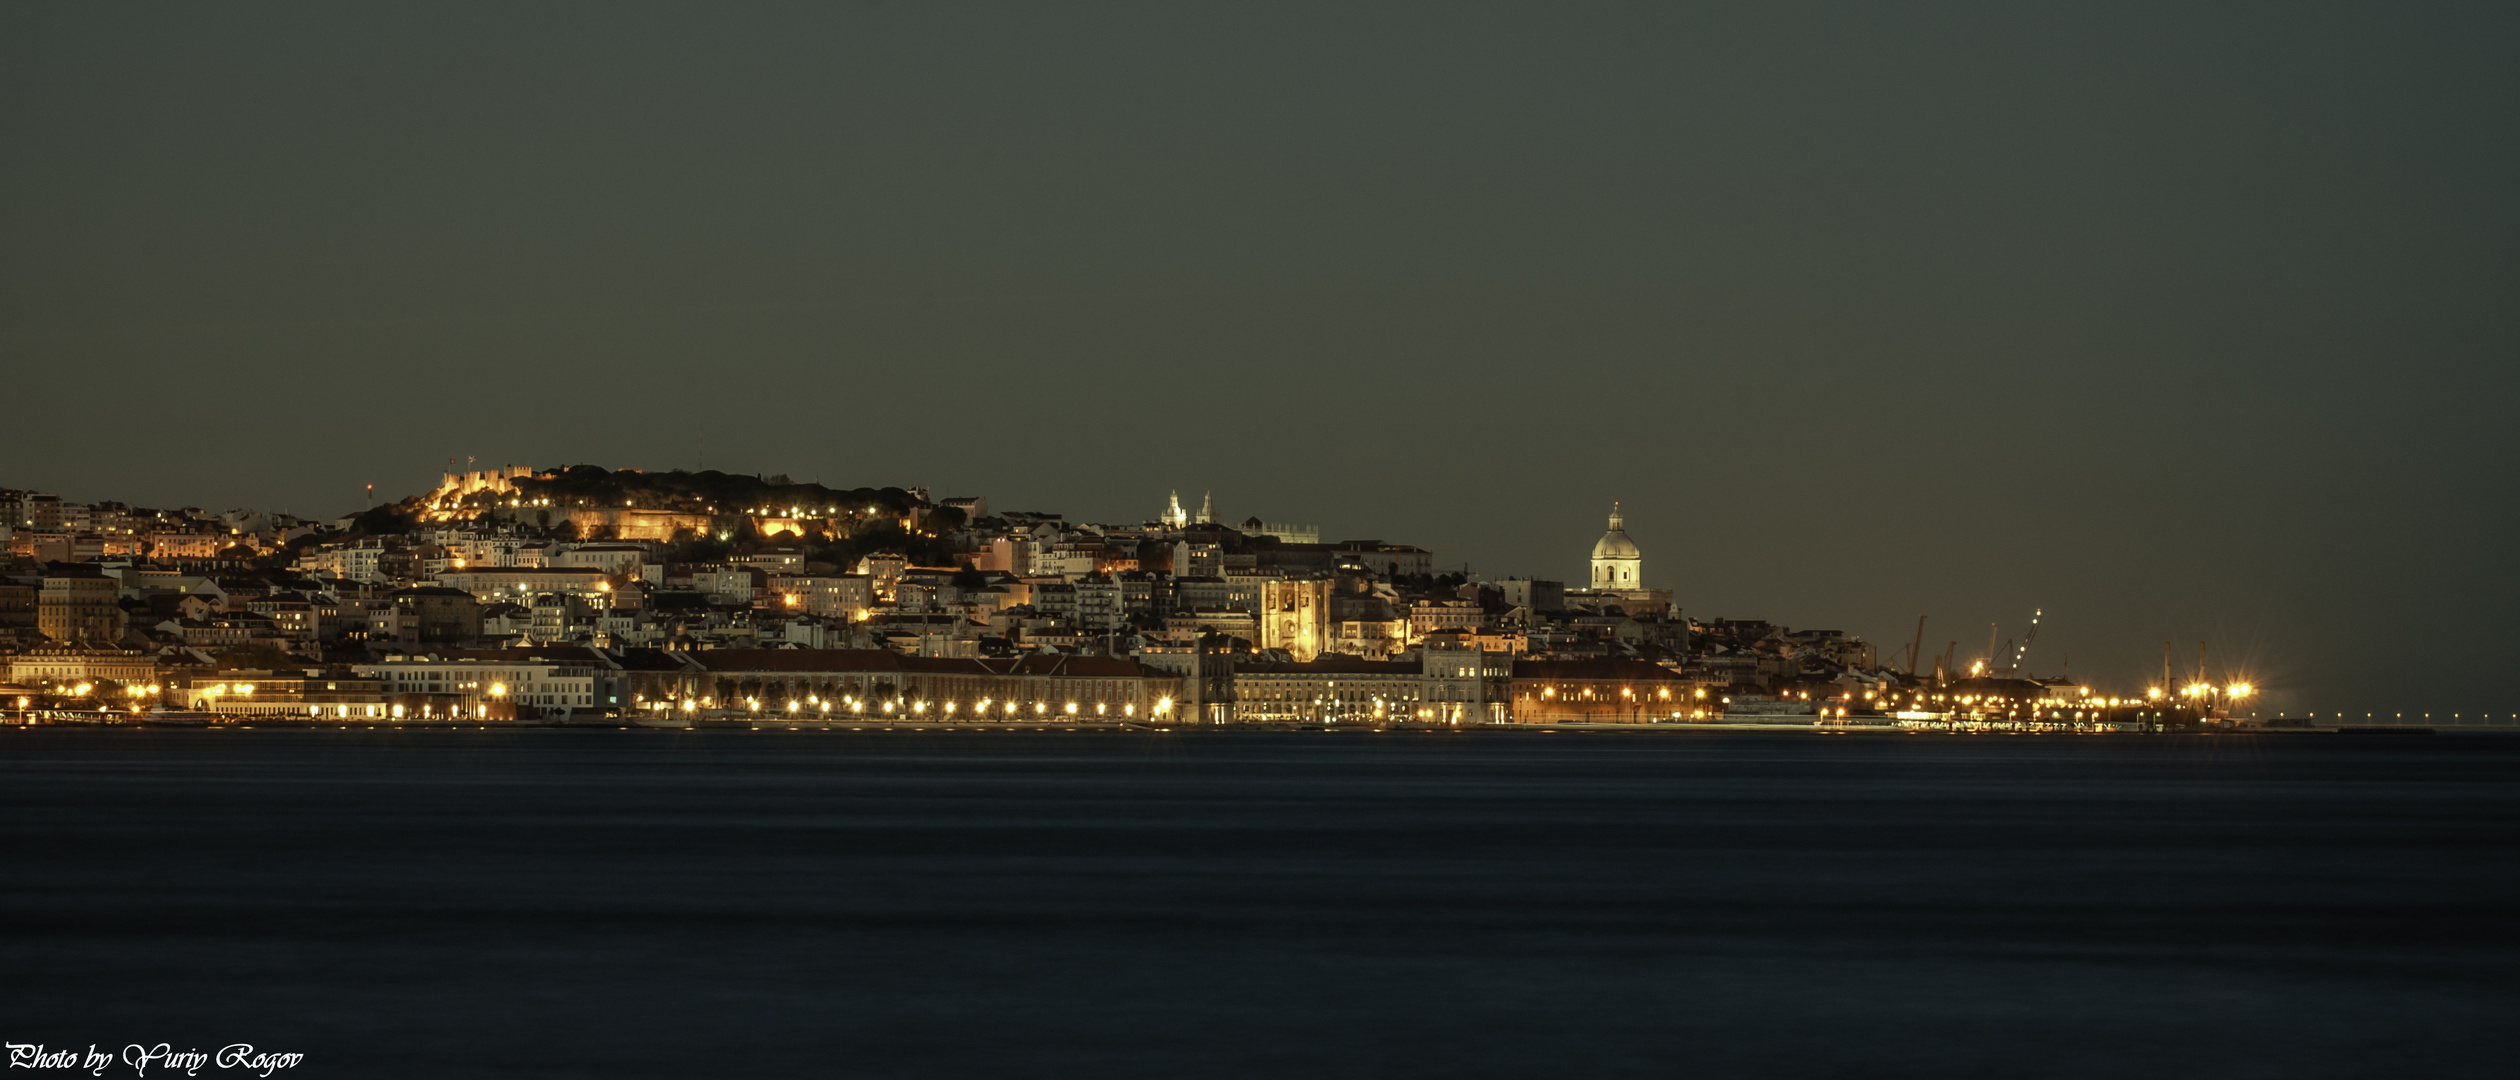 Lisbon. At the end of the day